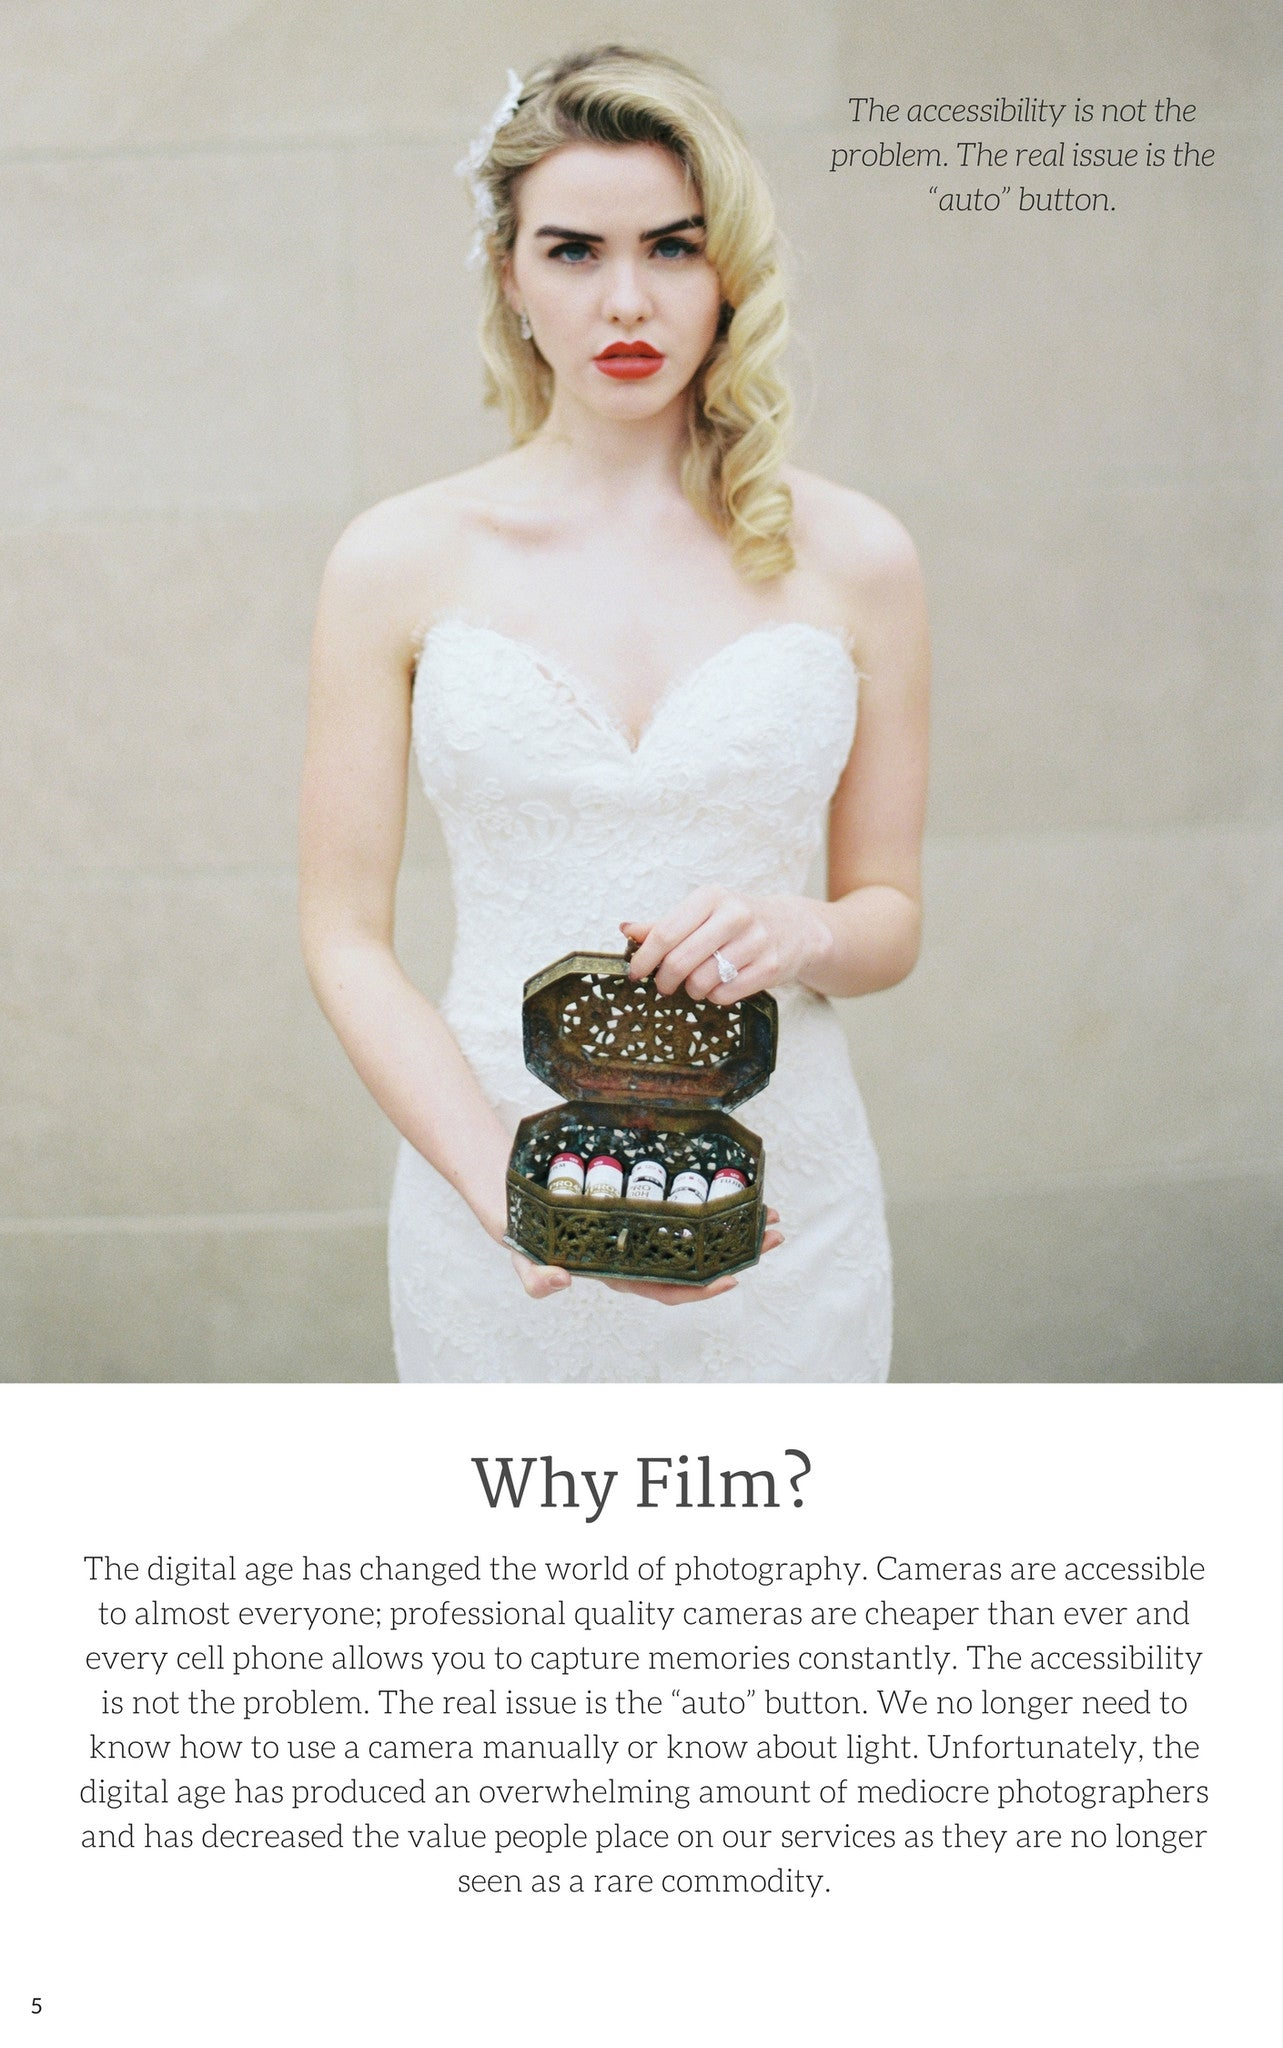 Mini Guide: Introductory Guide to Film Photography (free with newsletter subscription)